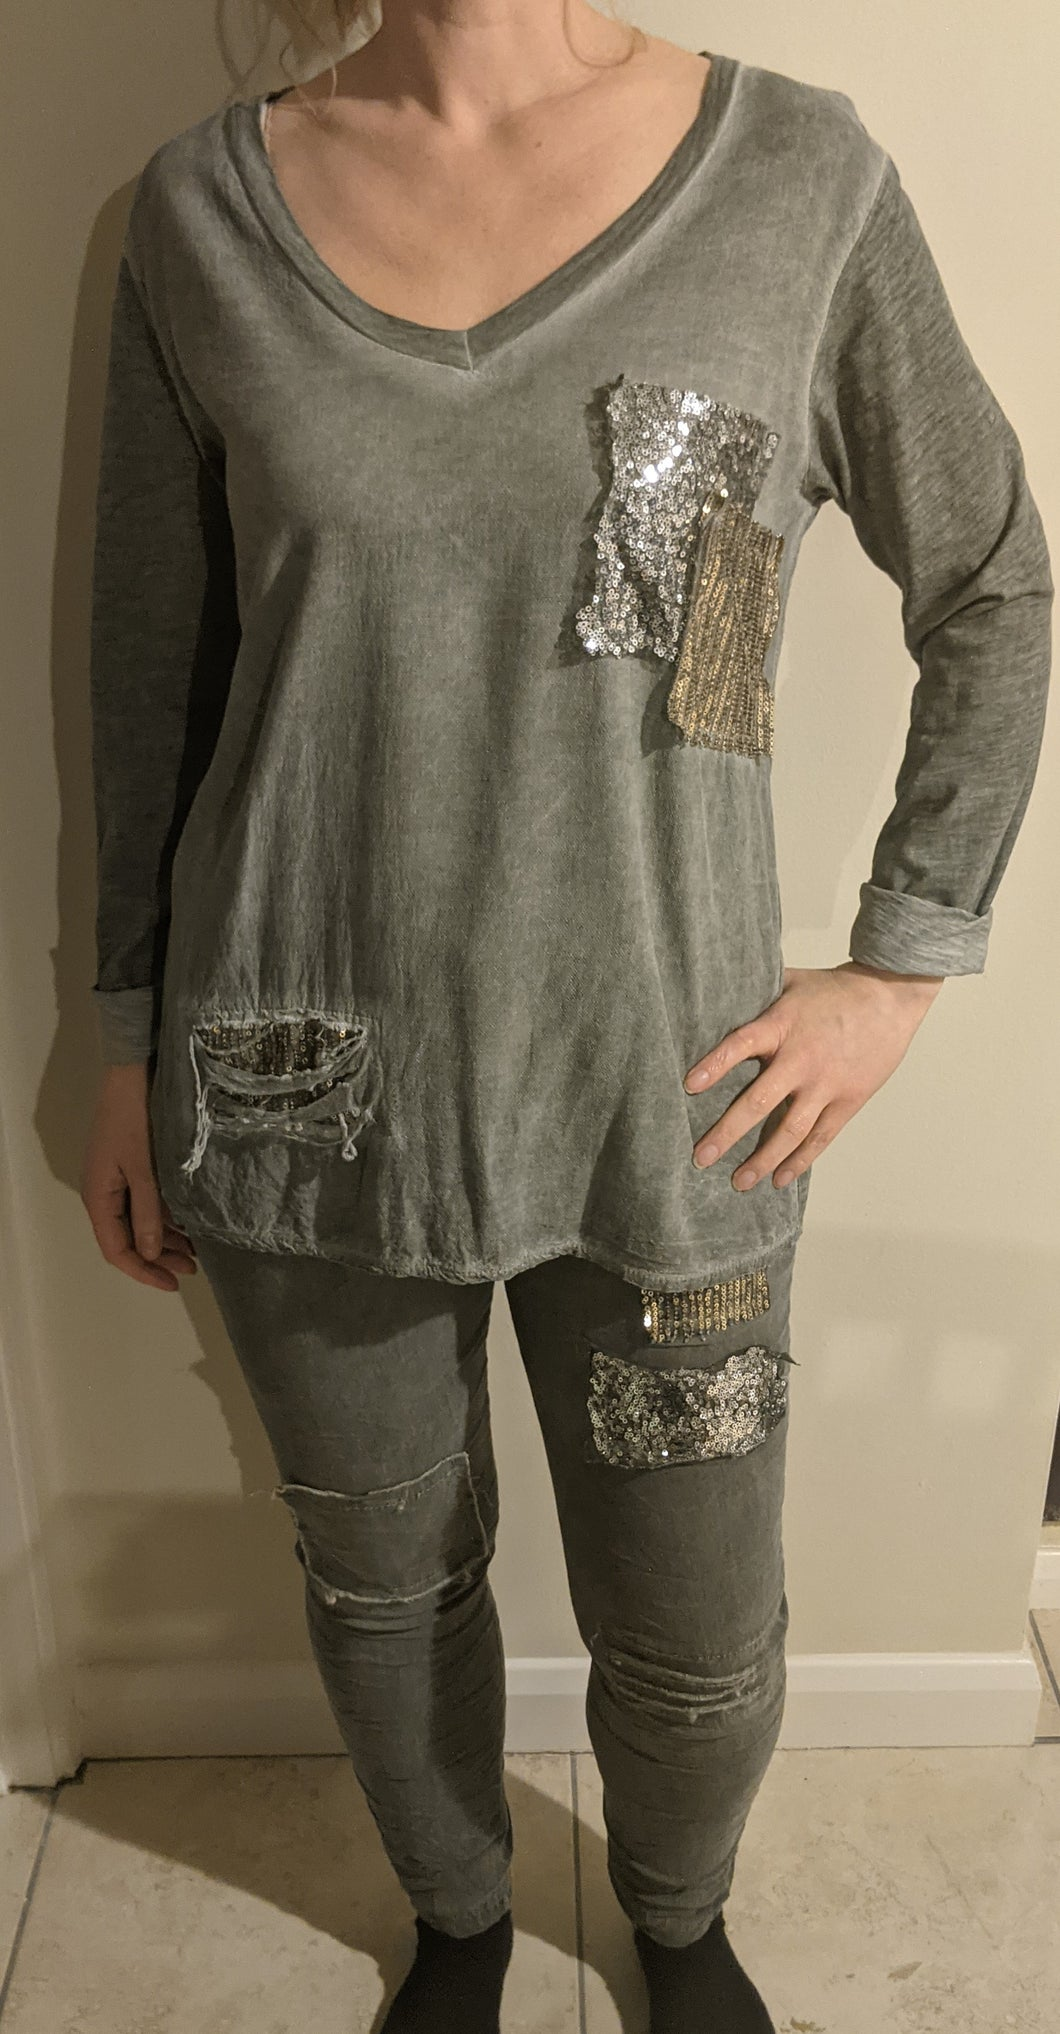 Lightweight V Neck Top - Distressed, Relaxed Fit with Patch Sequins